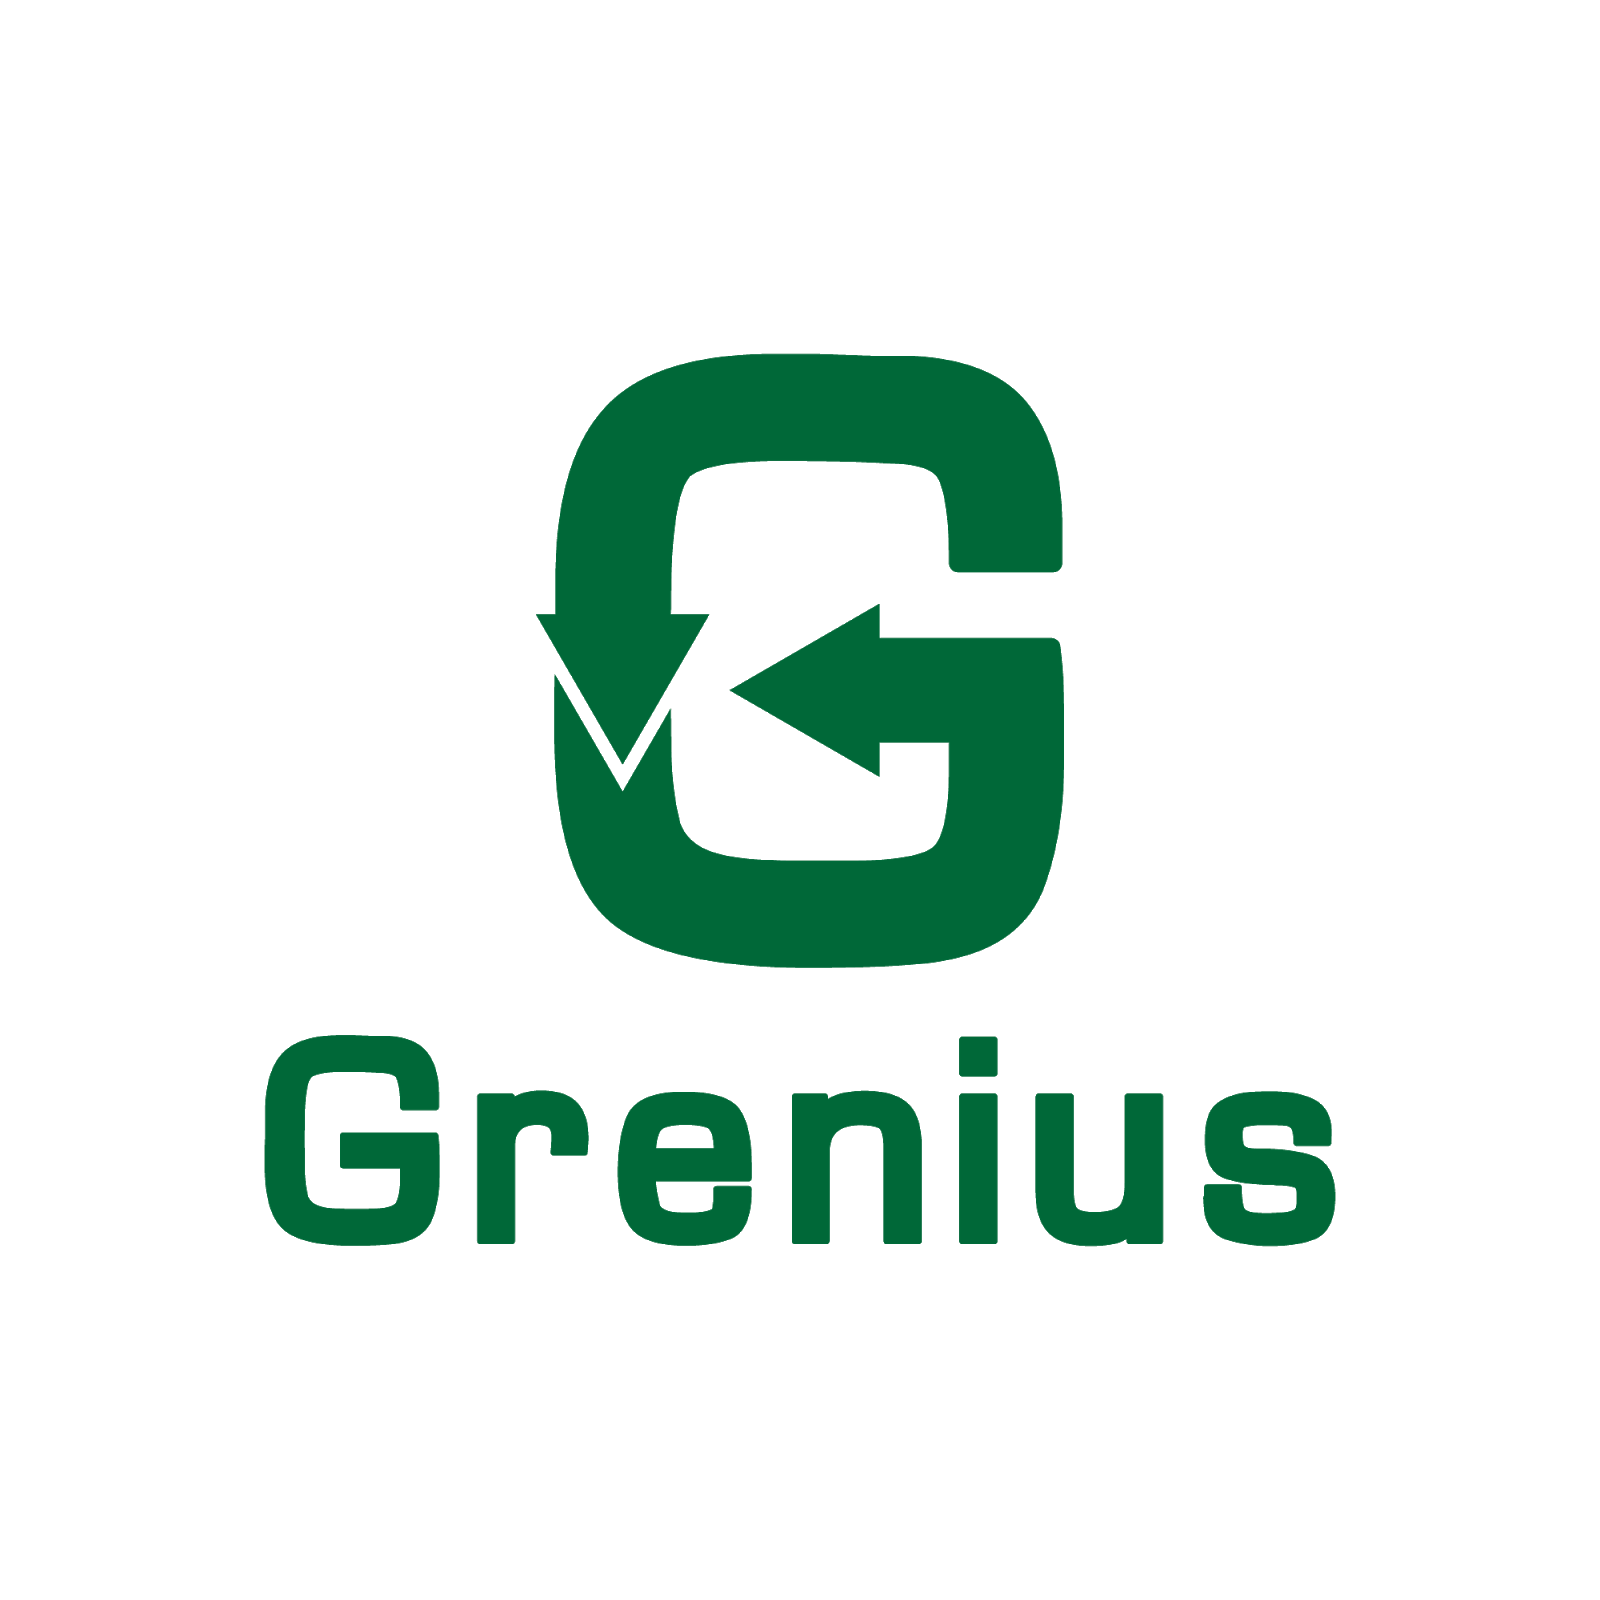 About Us grenius